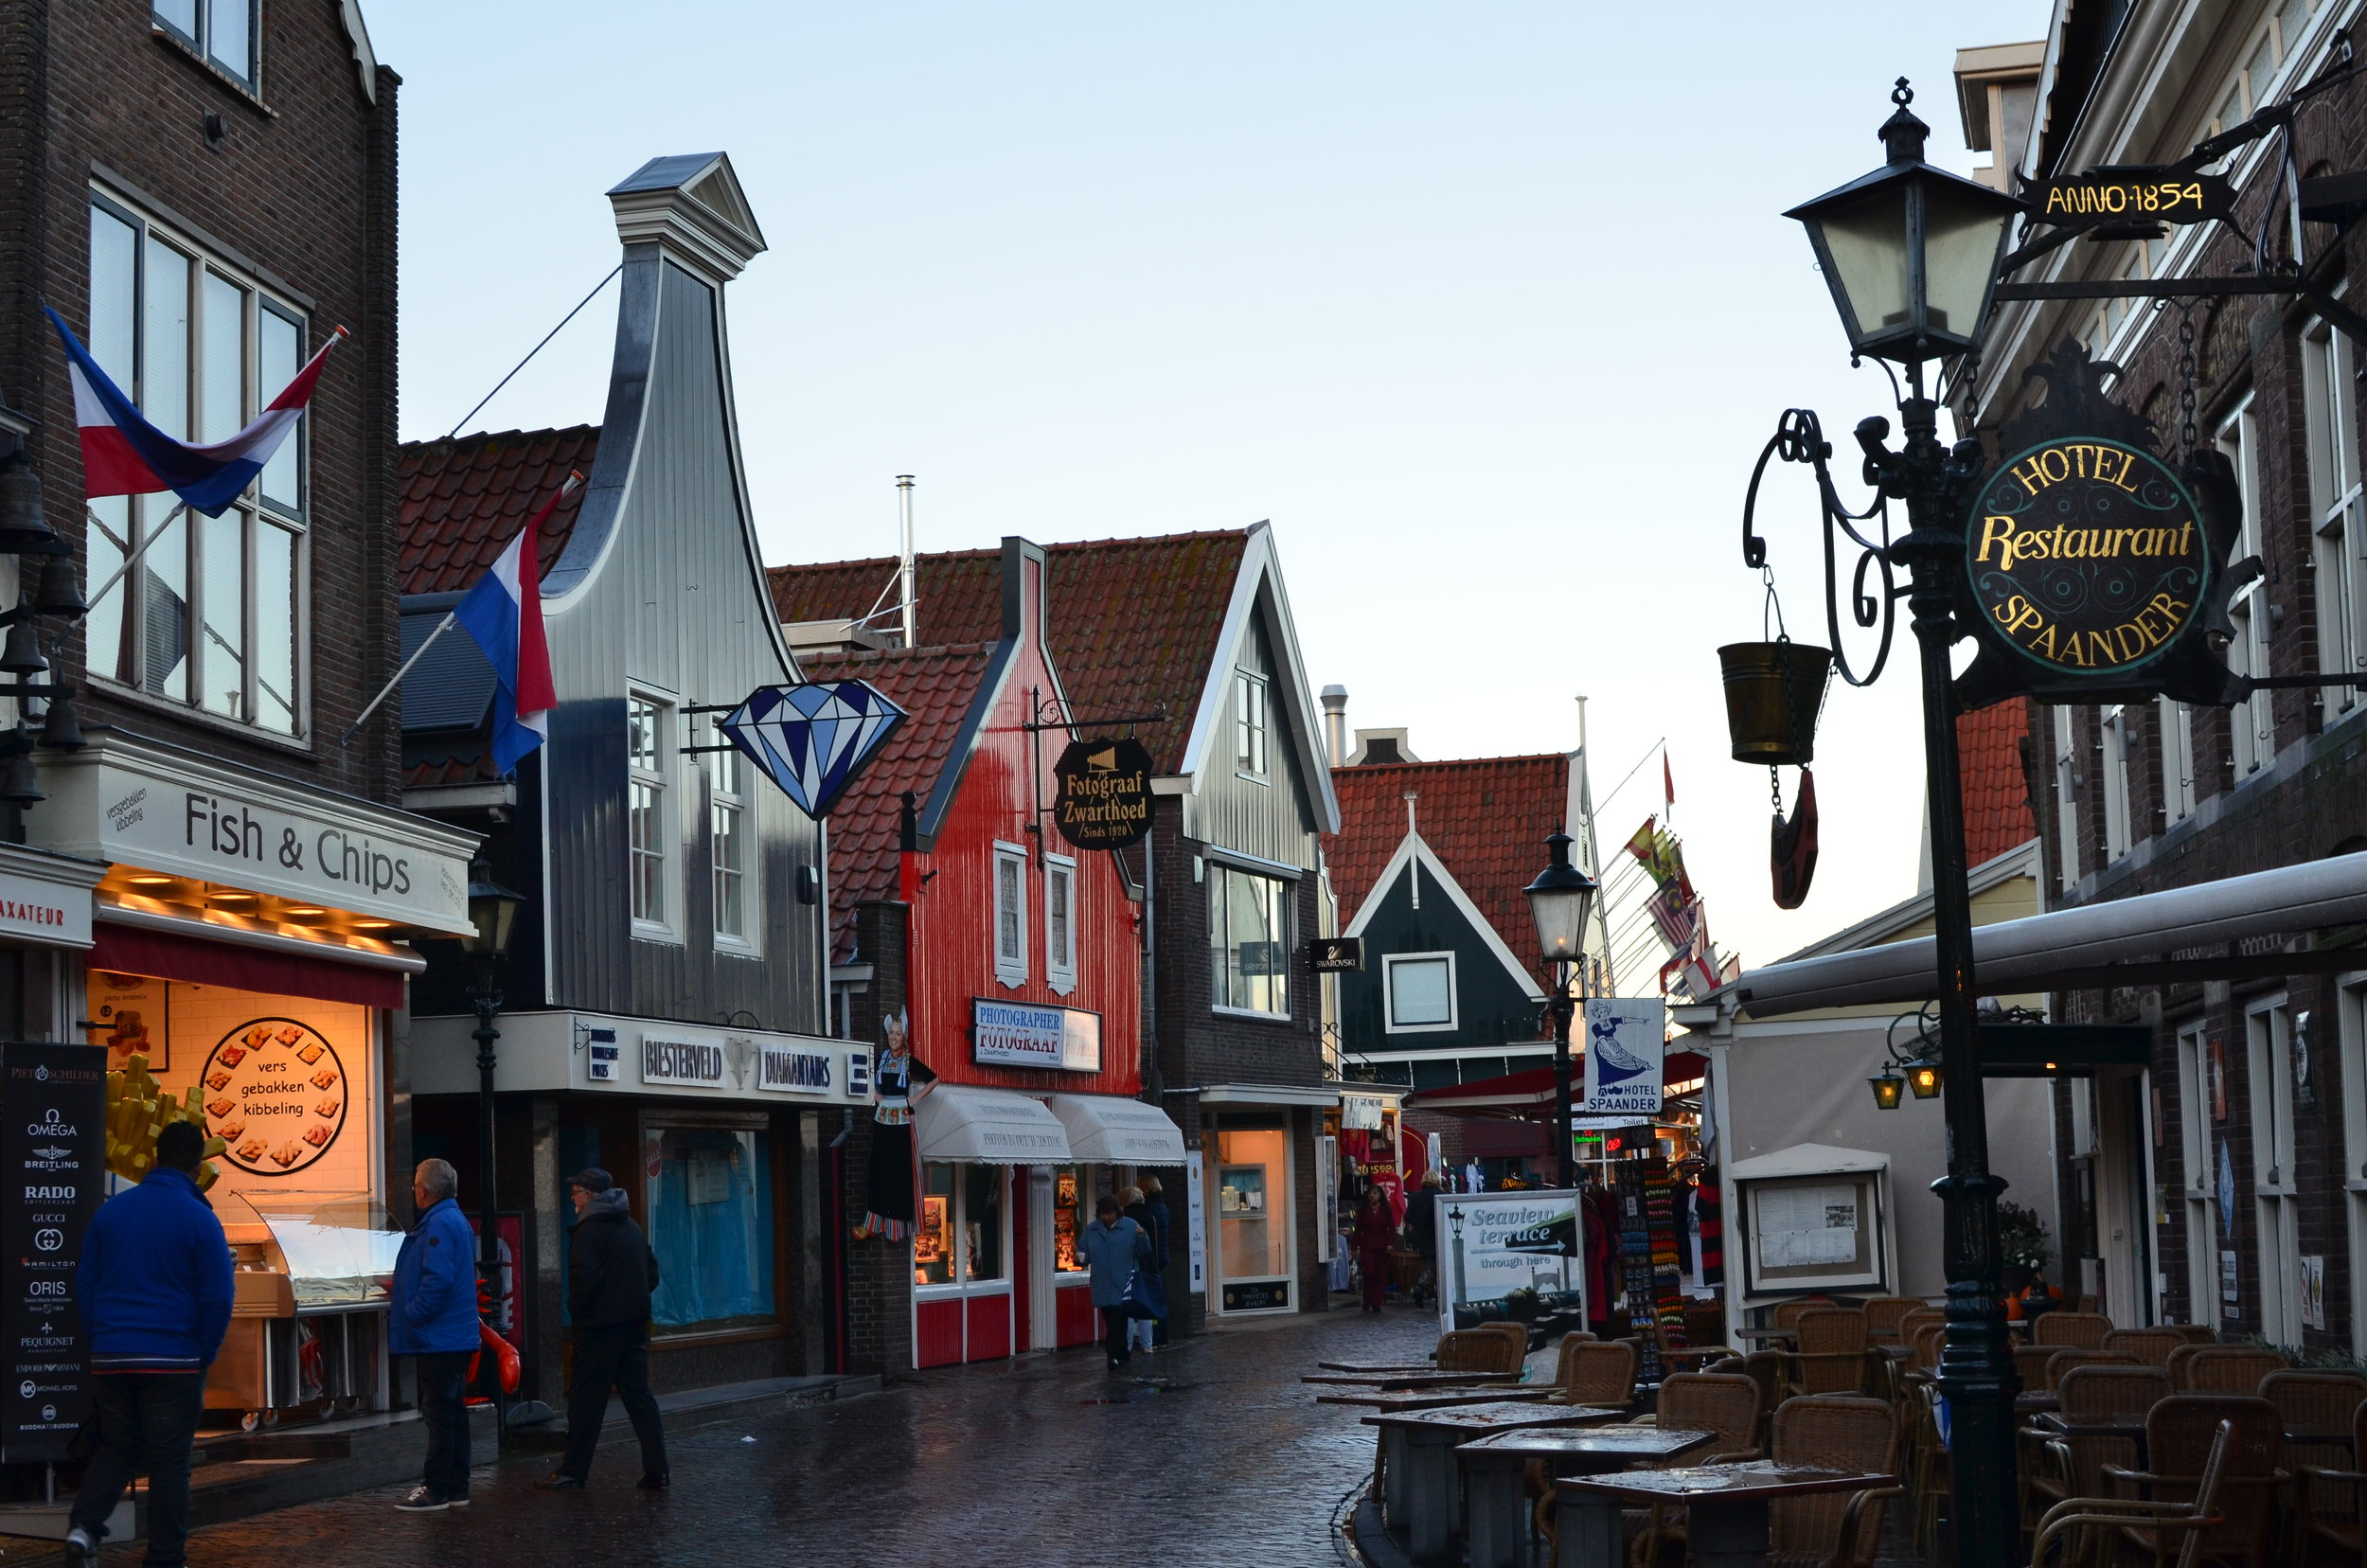 The cute town of Volendam by the water